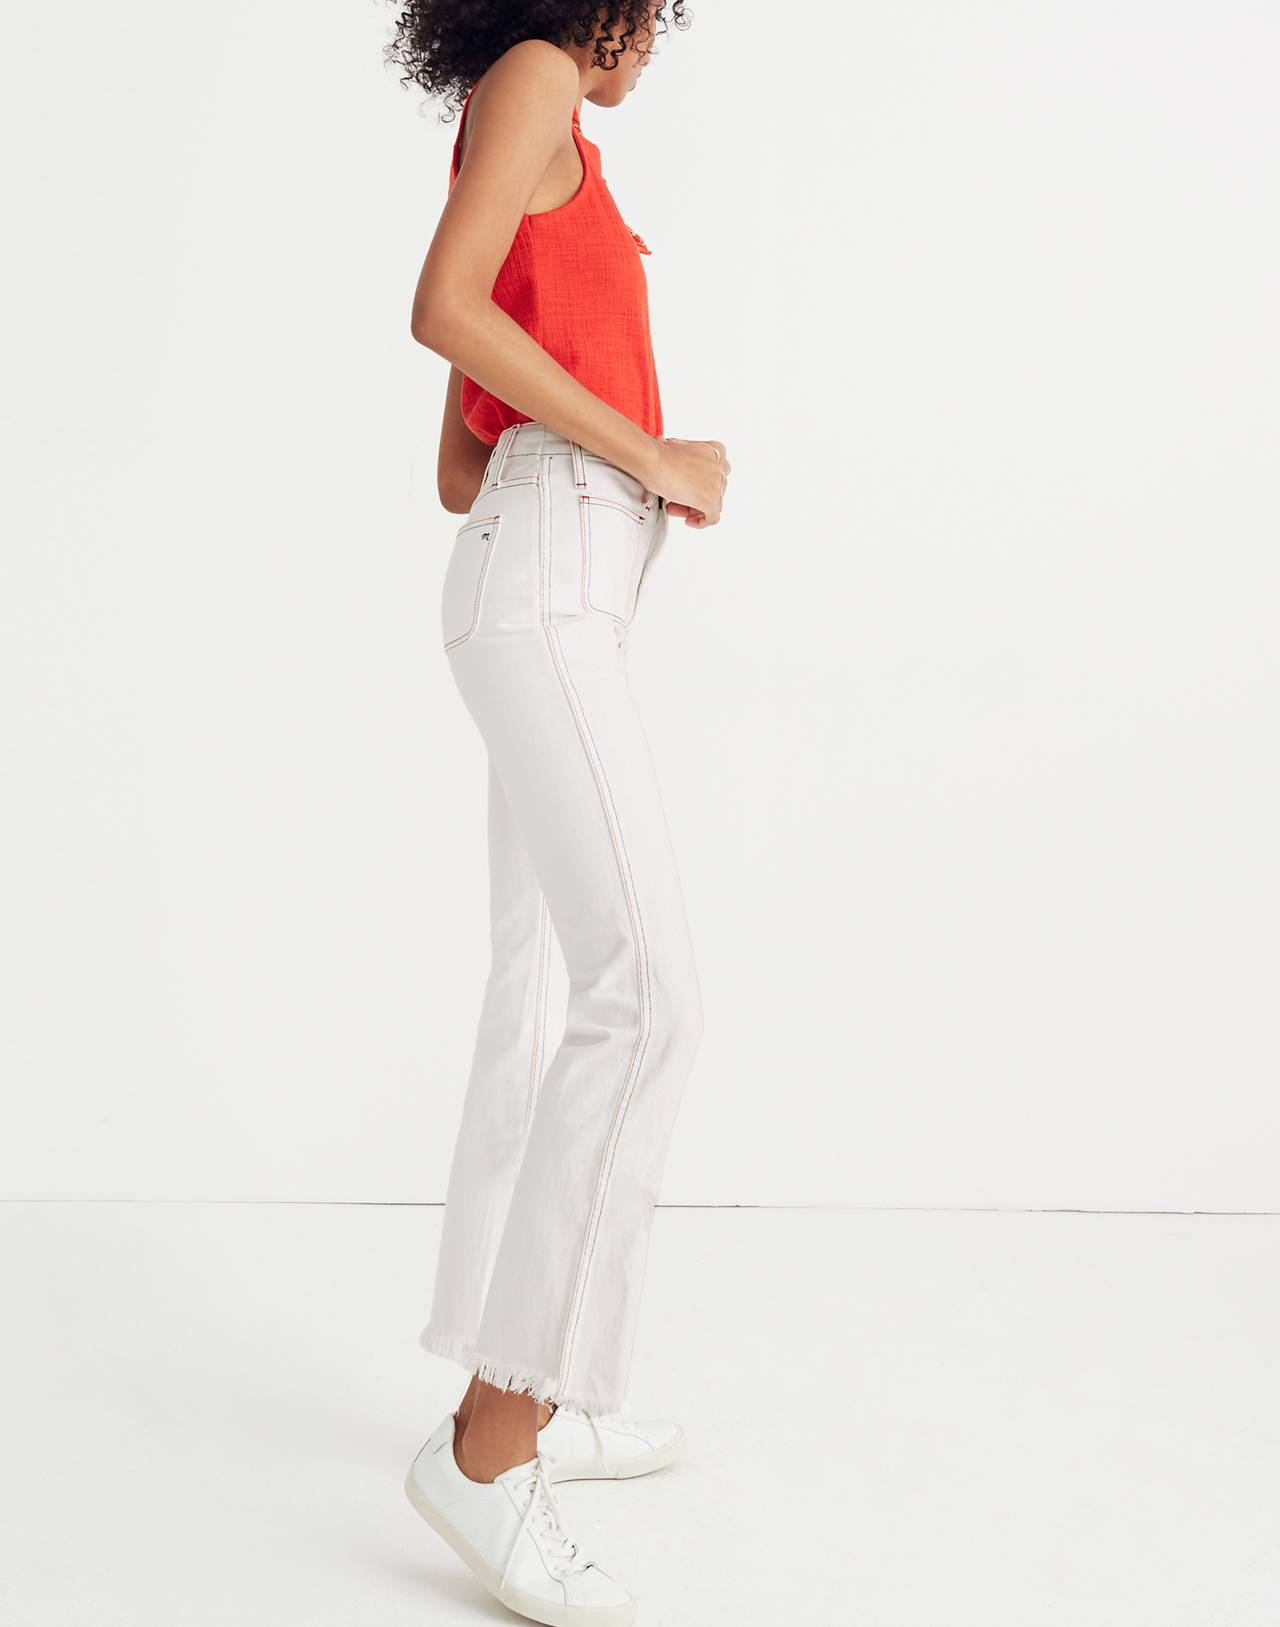 Rigid Demi Boot Crop Jeans: Red White and Blue Edition in armstrong wash image 3